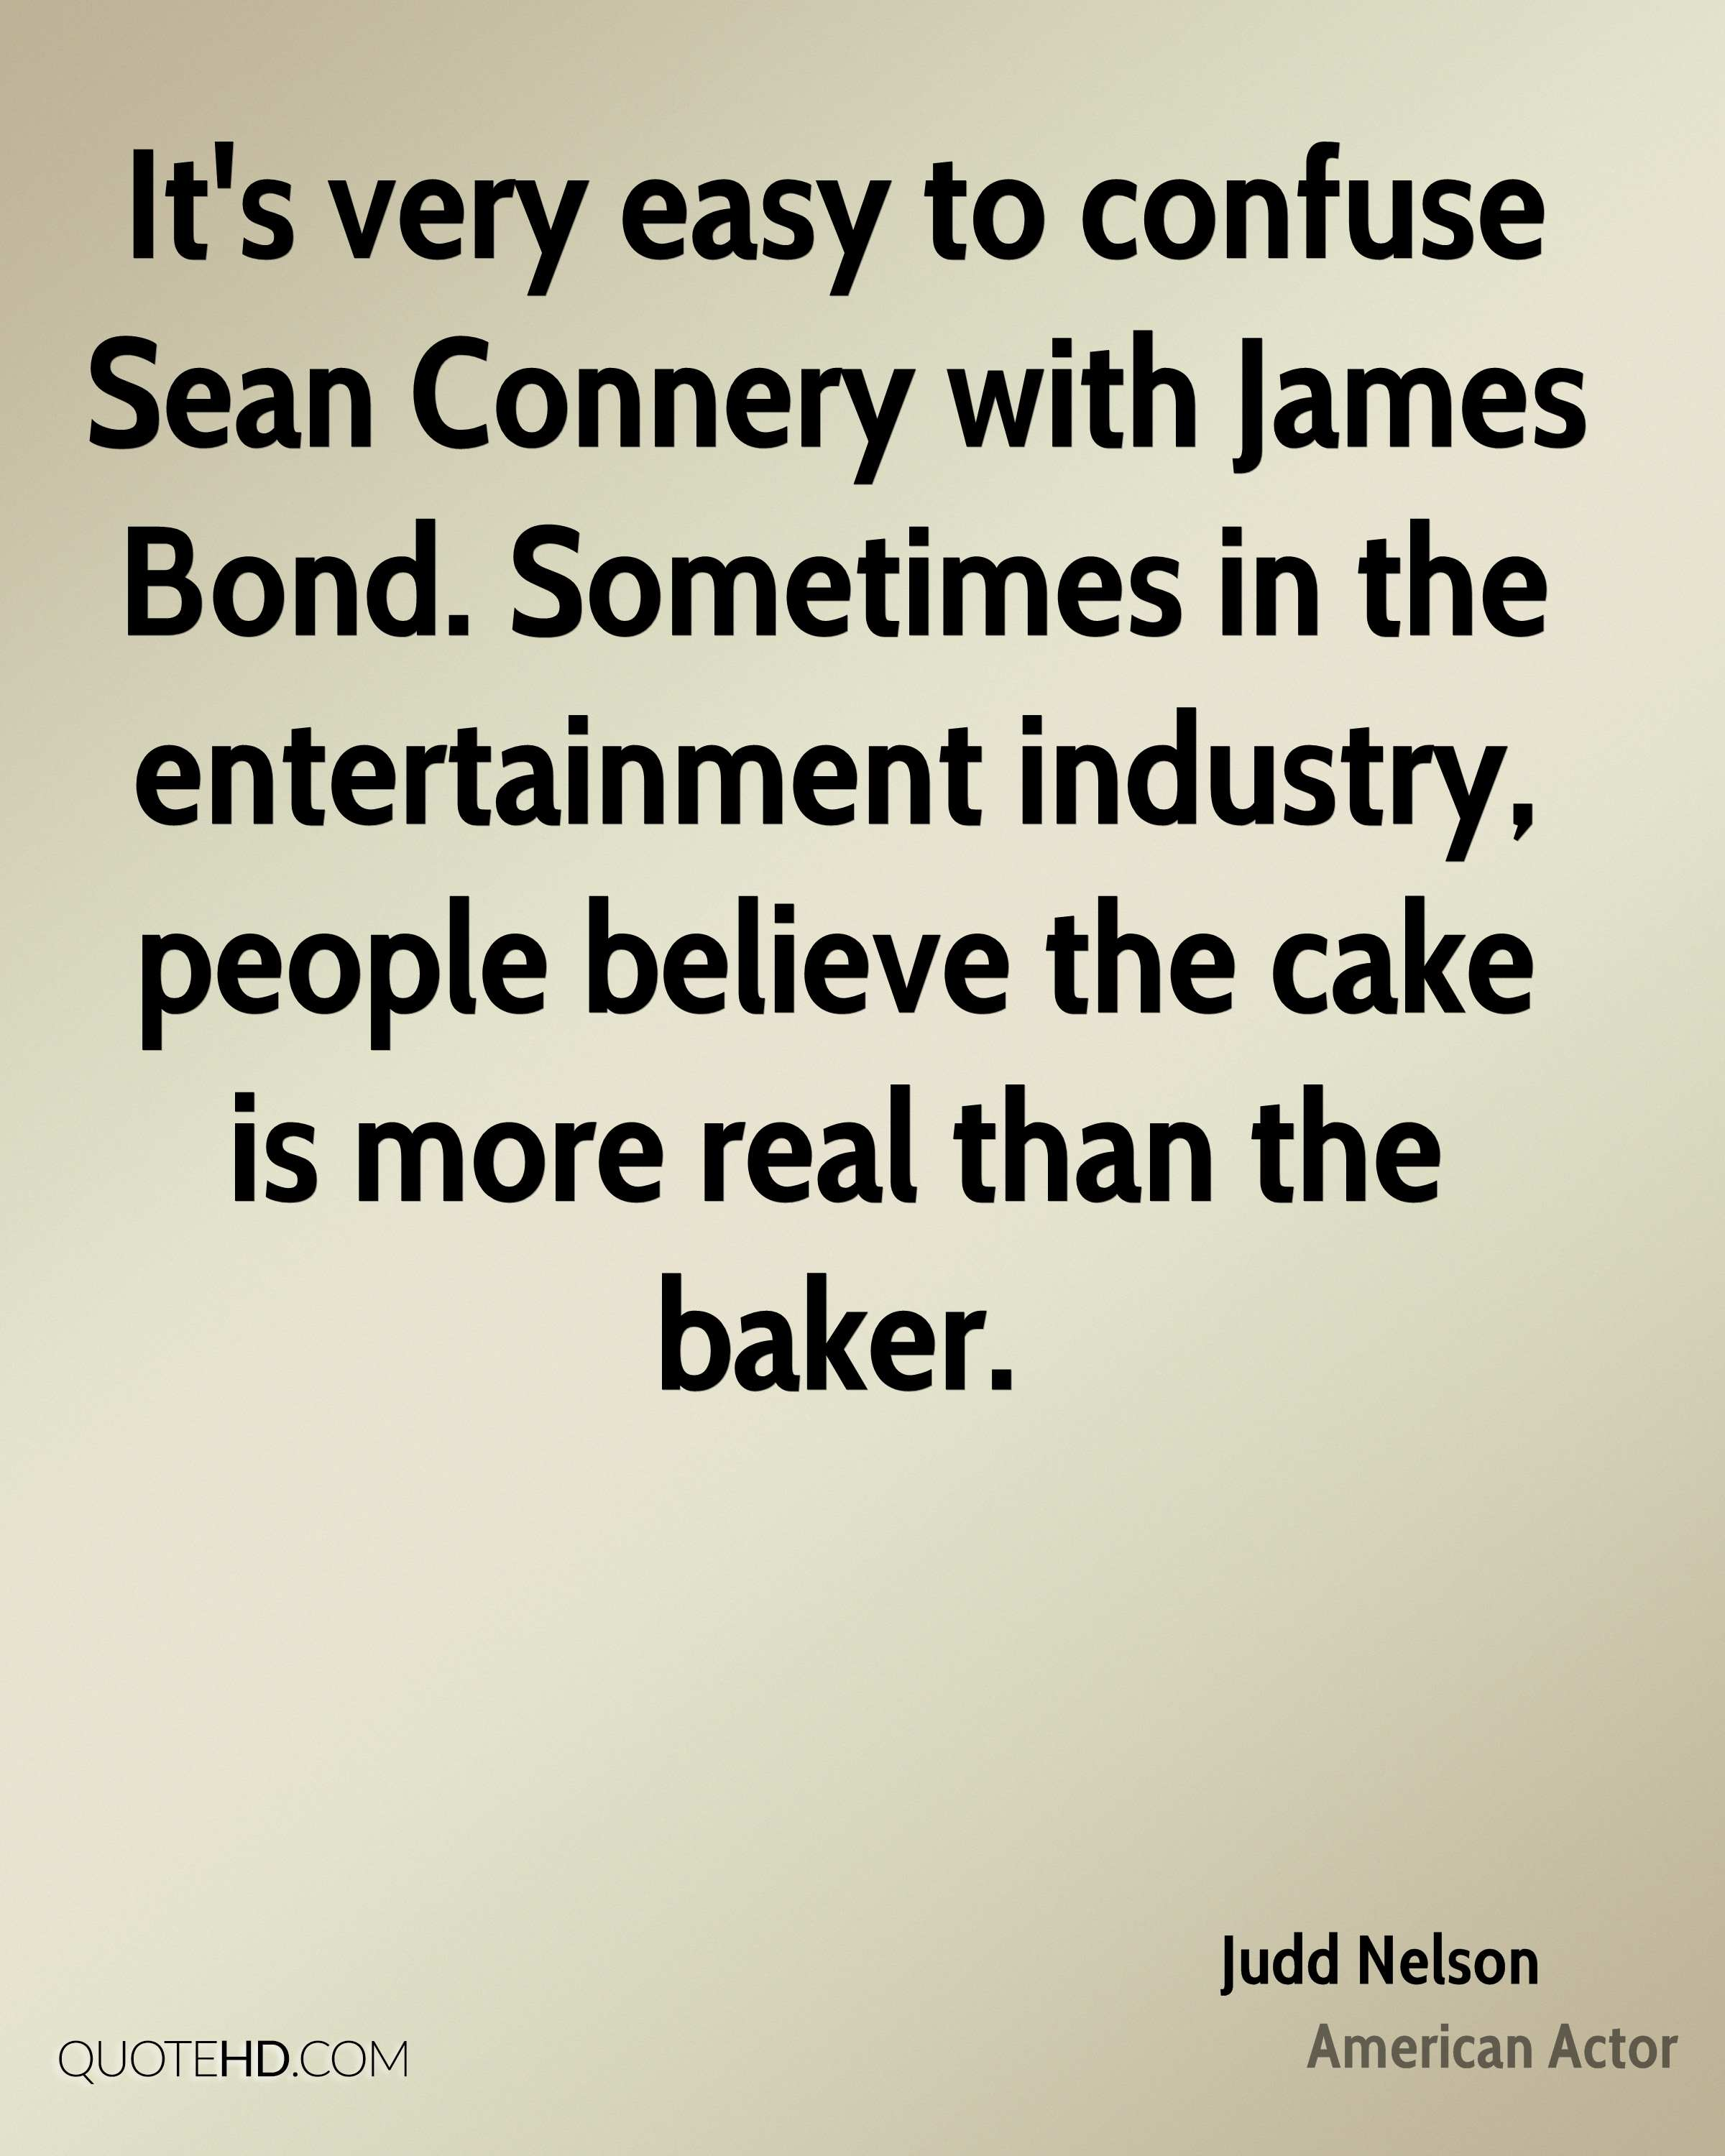 It's very easy to confuse Sean Connery with James Bond. Sometimes in the entertainment industry, people believe the cake is more real than the baker.